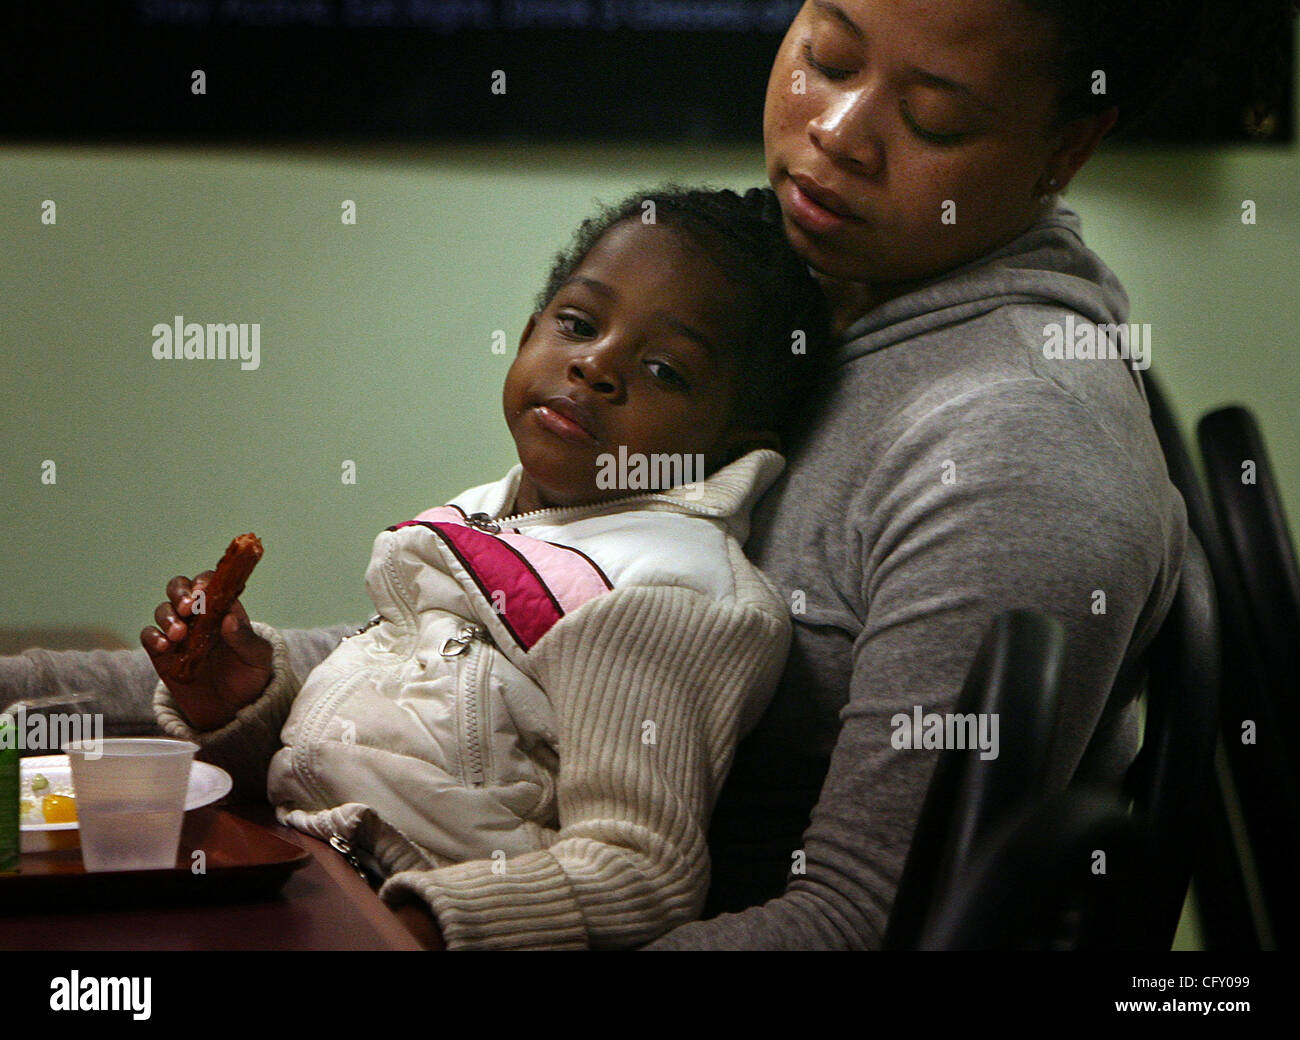 Minneapolis/April 20 2007/5:00PM.Keisha Harding relaxes with her daughter, Valerie, 3, during the Kids Carnival - Stock Image